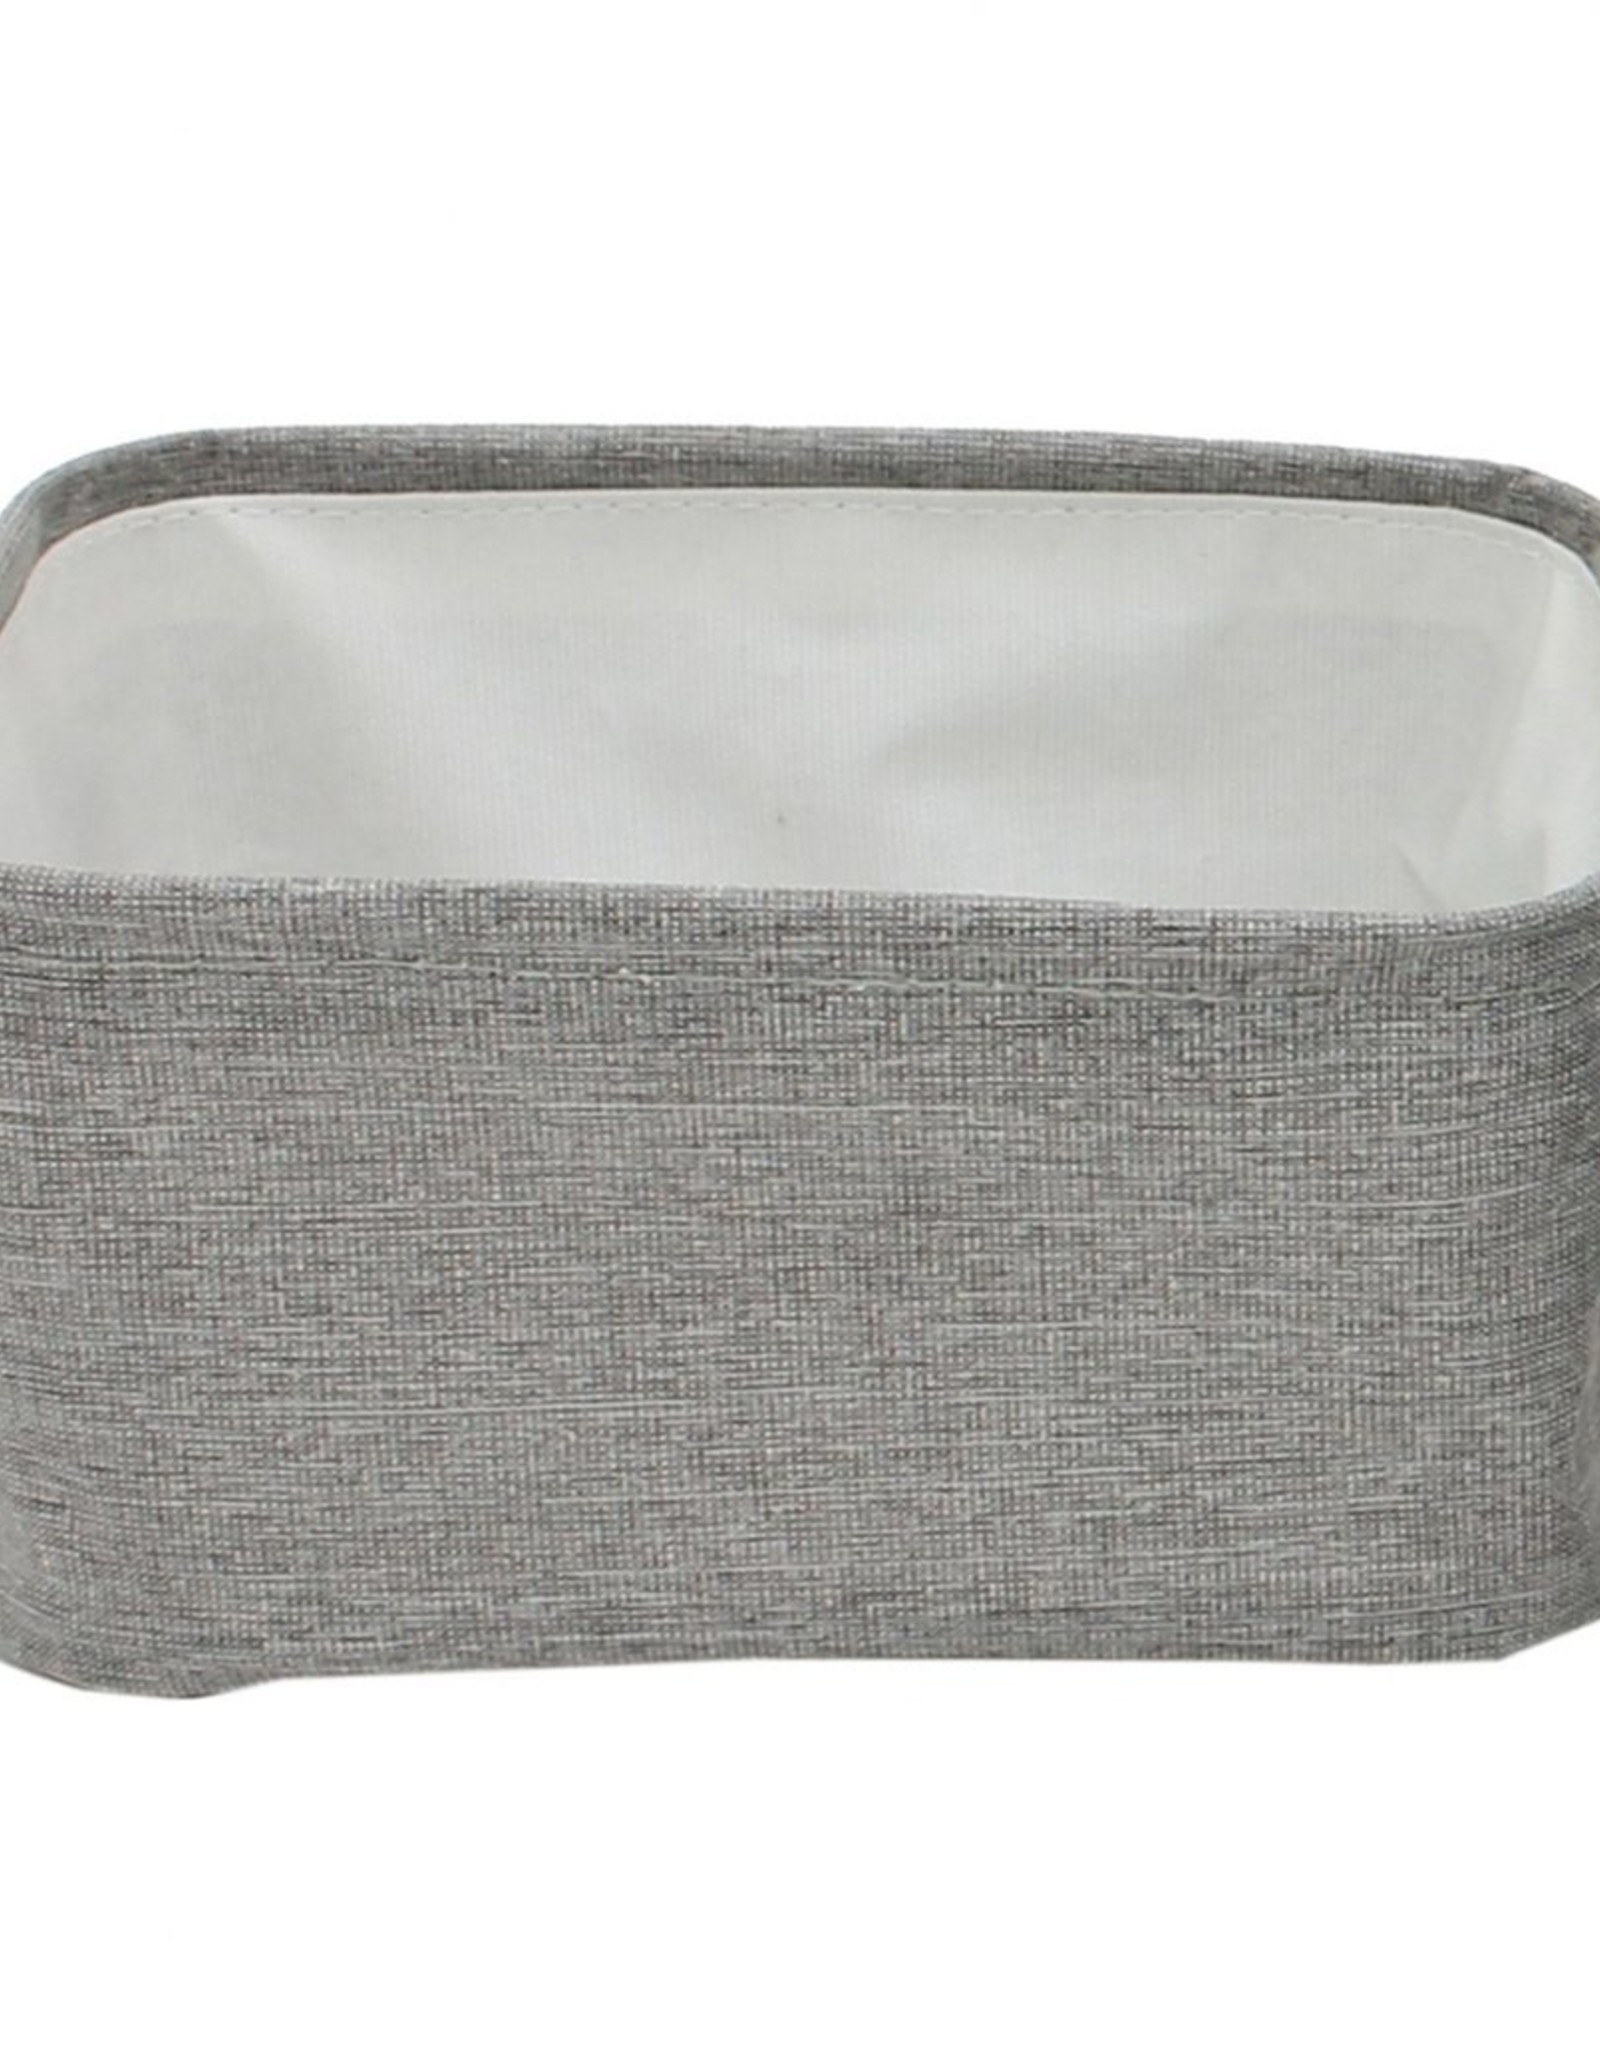 """Cathay Basket Cathay Grey Rectangle 9.5""""L 10-2445"""